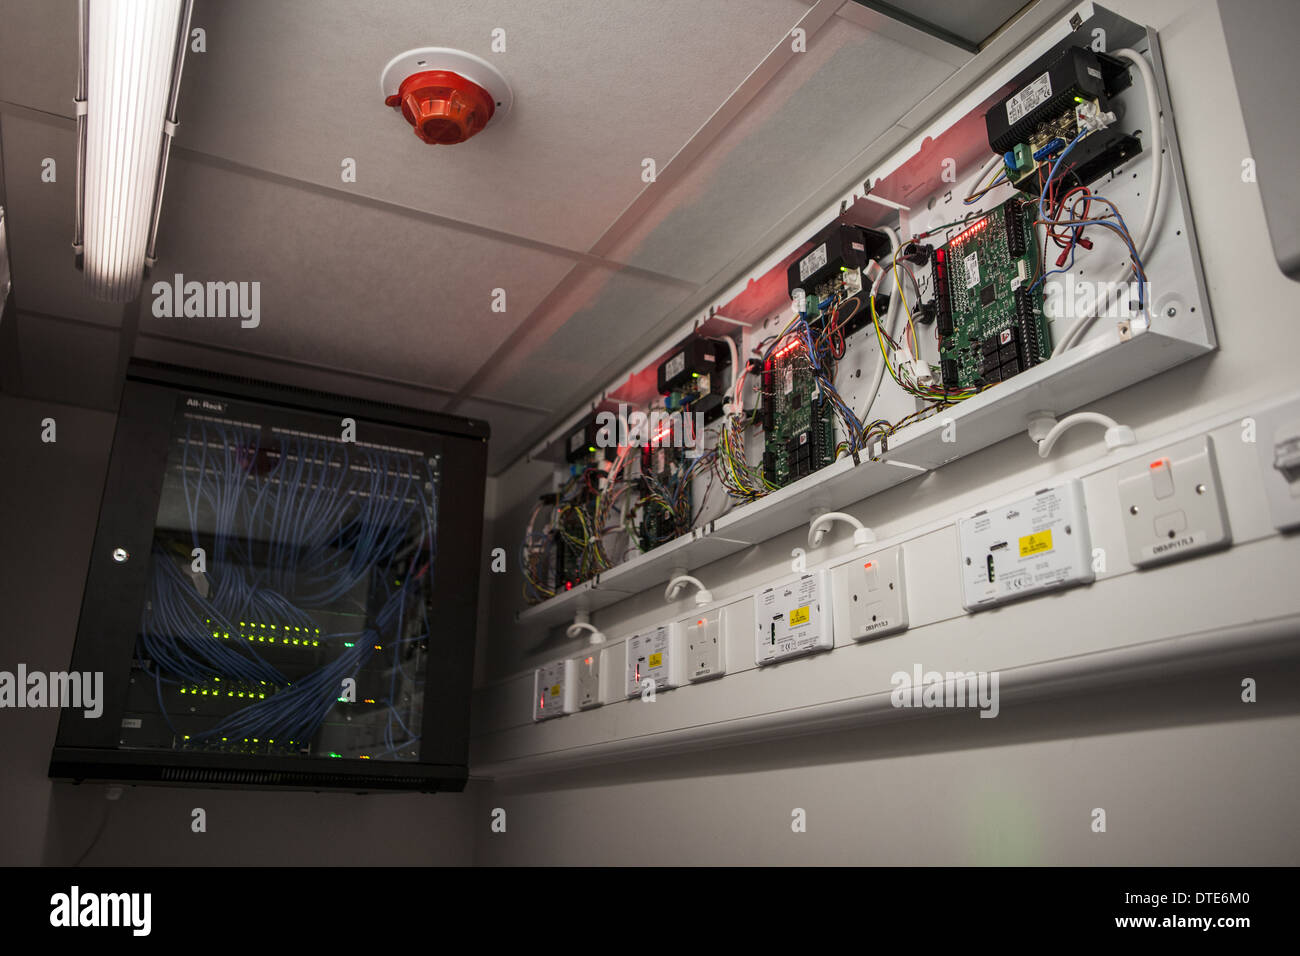 Fire Alarm System Stock Photos Amp Fire Alarm System Stock